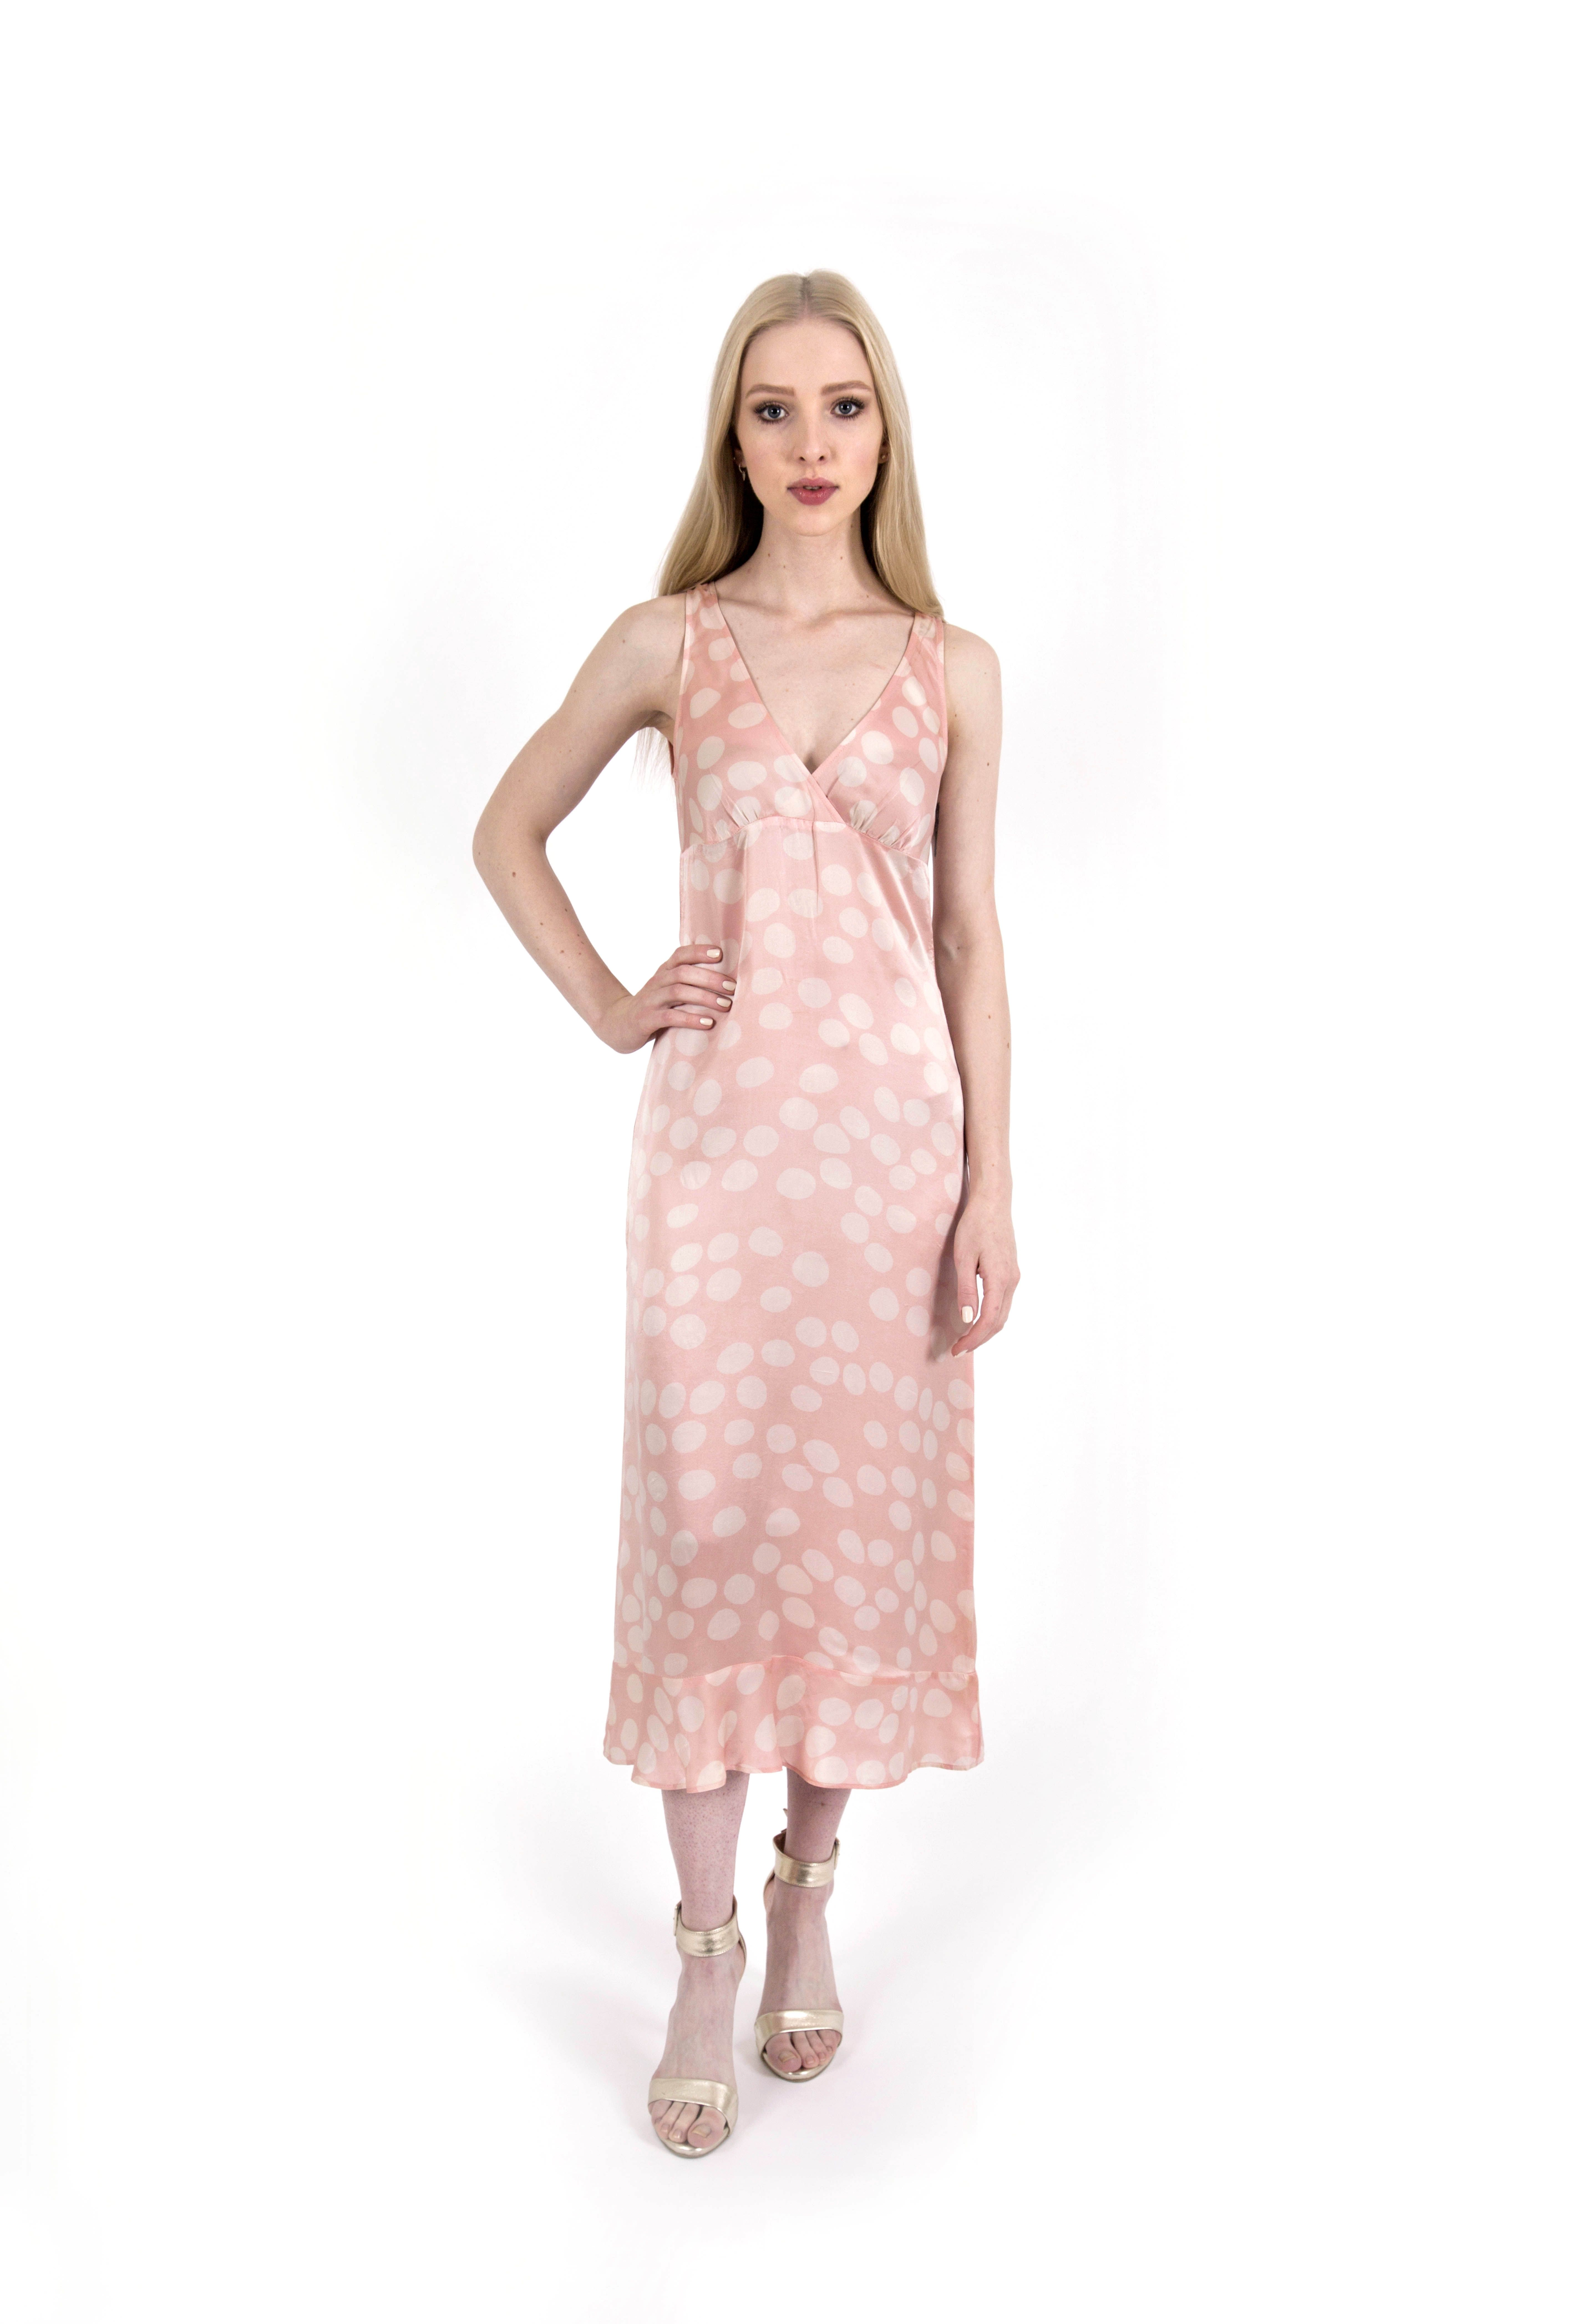 cd4a687718252 Our Closet Joseph Vintage pink polka dot midi dress. A lovely and easy to  wear